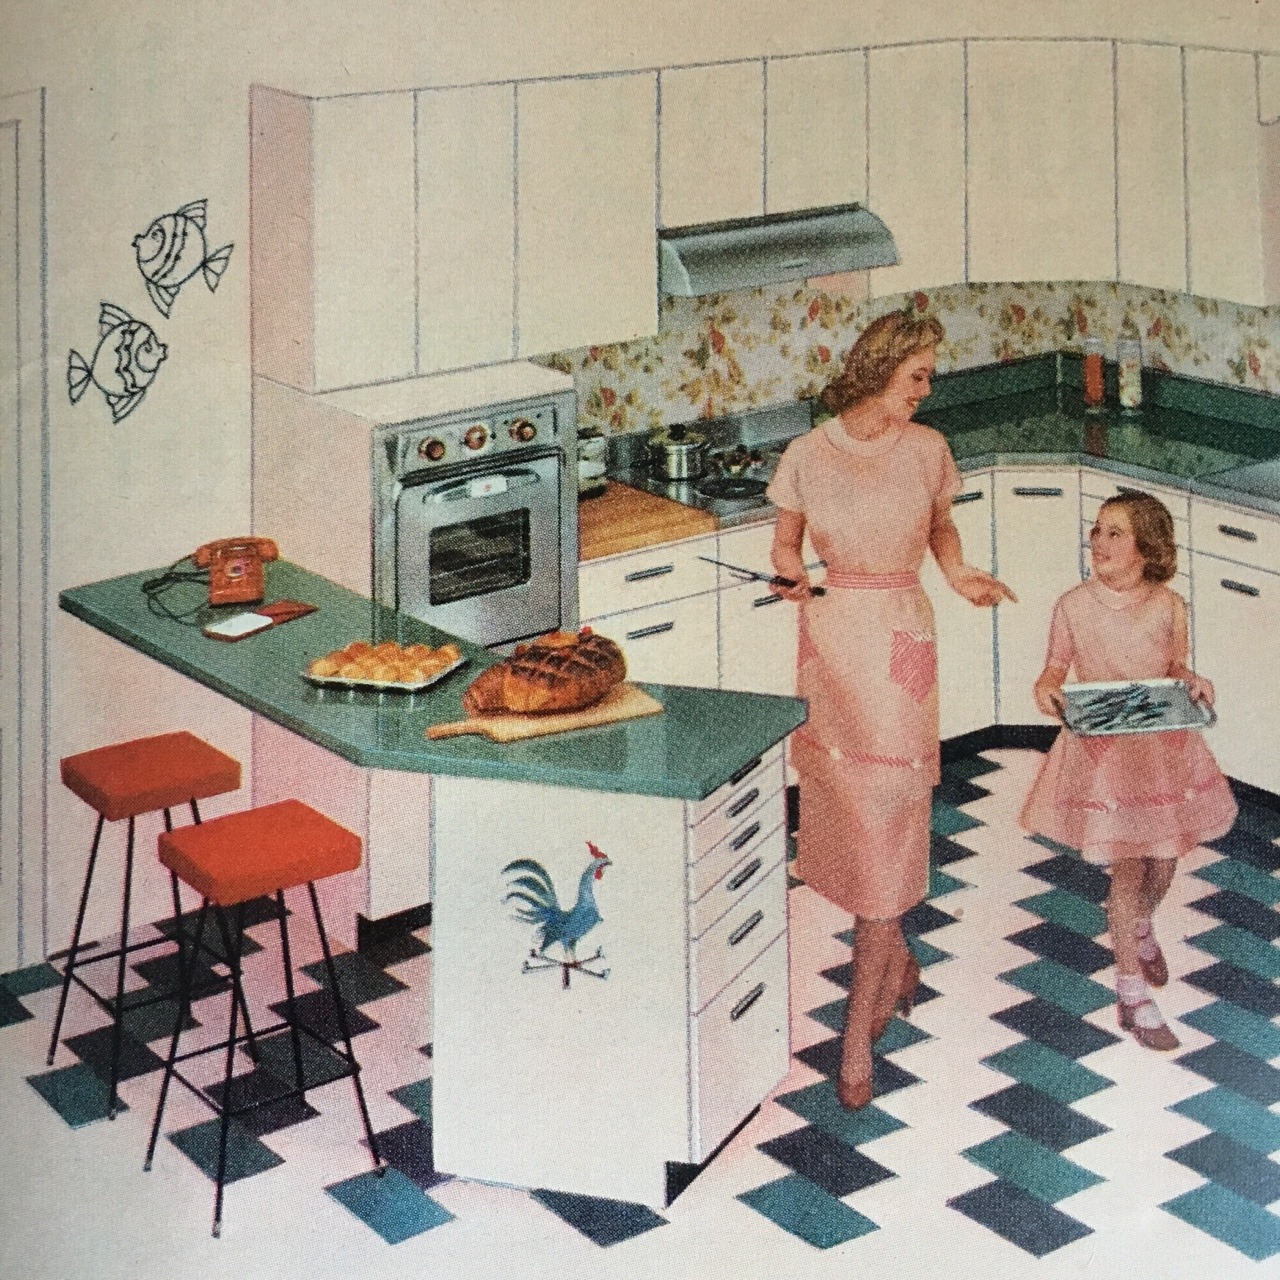 """Republic Steel Kitchens. Better Homes and Gardens. May 1956.   These cabinets came in""""Harmony Hues"""" including Prelude Pink, Largo Yellow, and Tempo Turquoise. Steel kitchens were particularly popular in the'50s, as steel production was still plentiful and cheap during the Postwar era."""